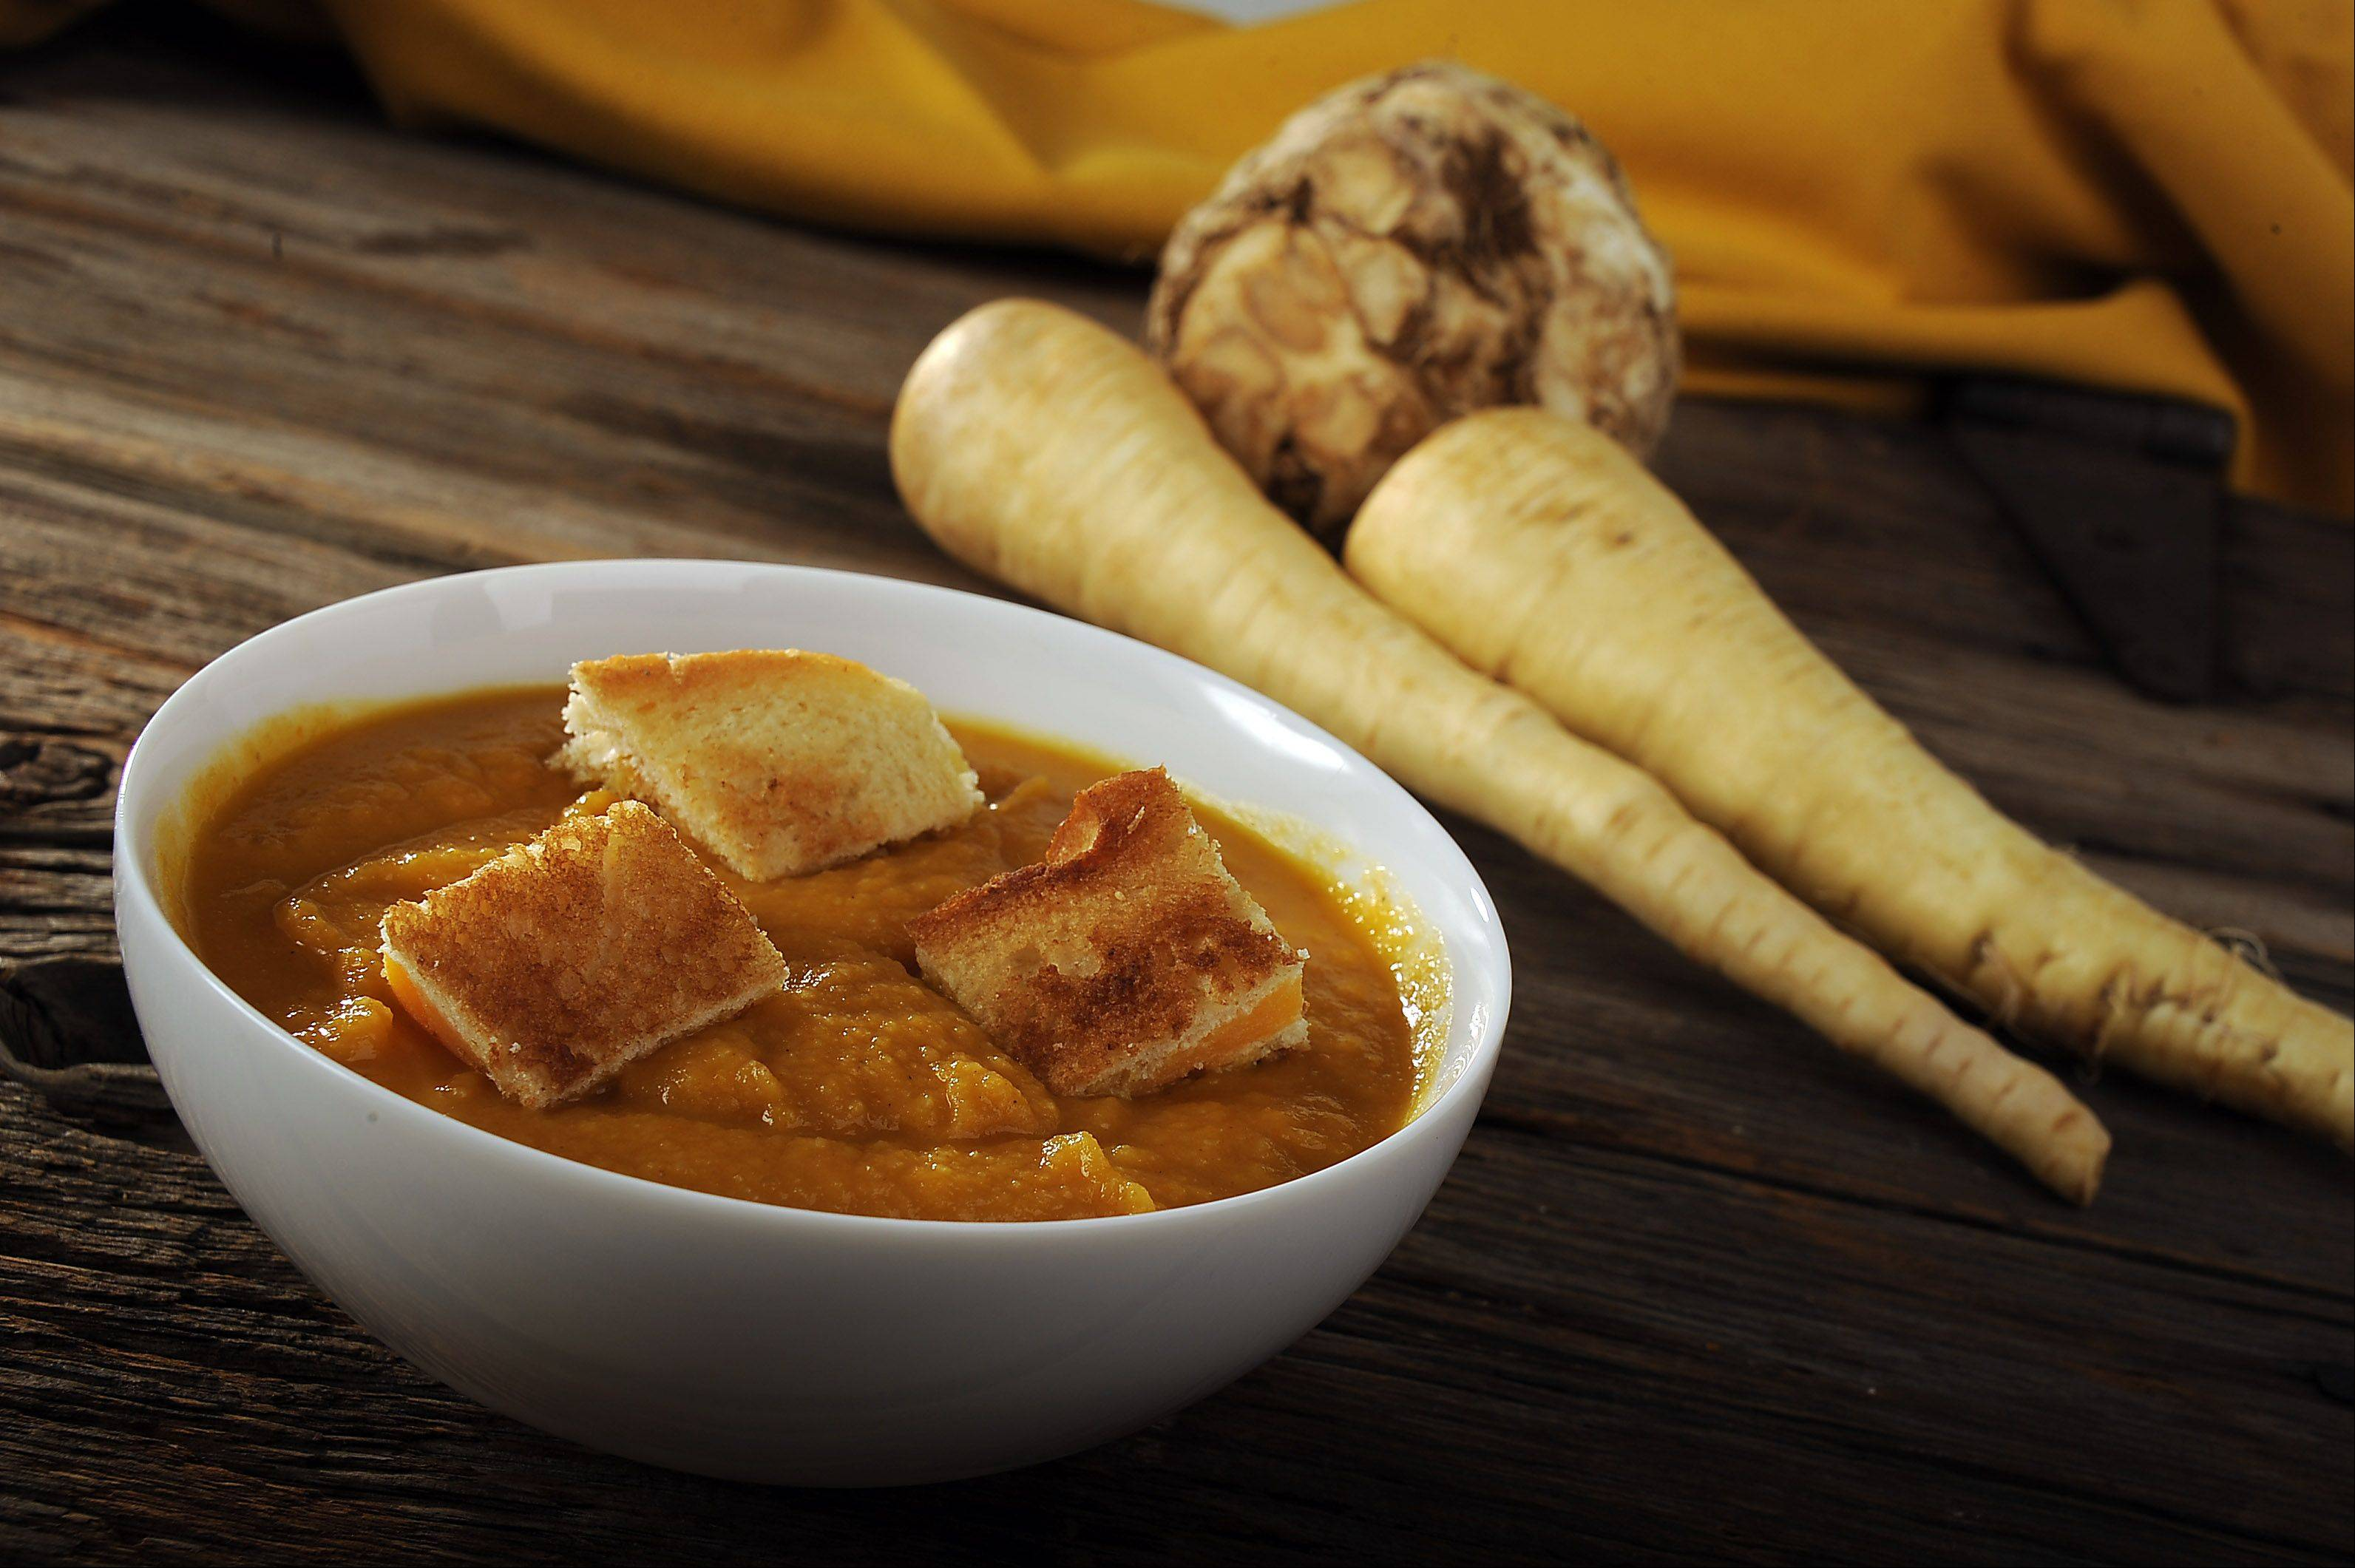 Once you look past their appearance, you'll love root vegetables in this soup.